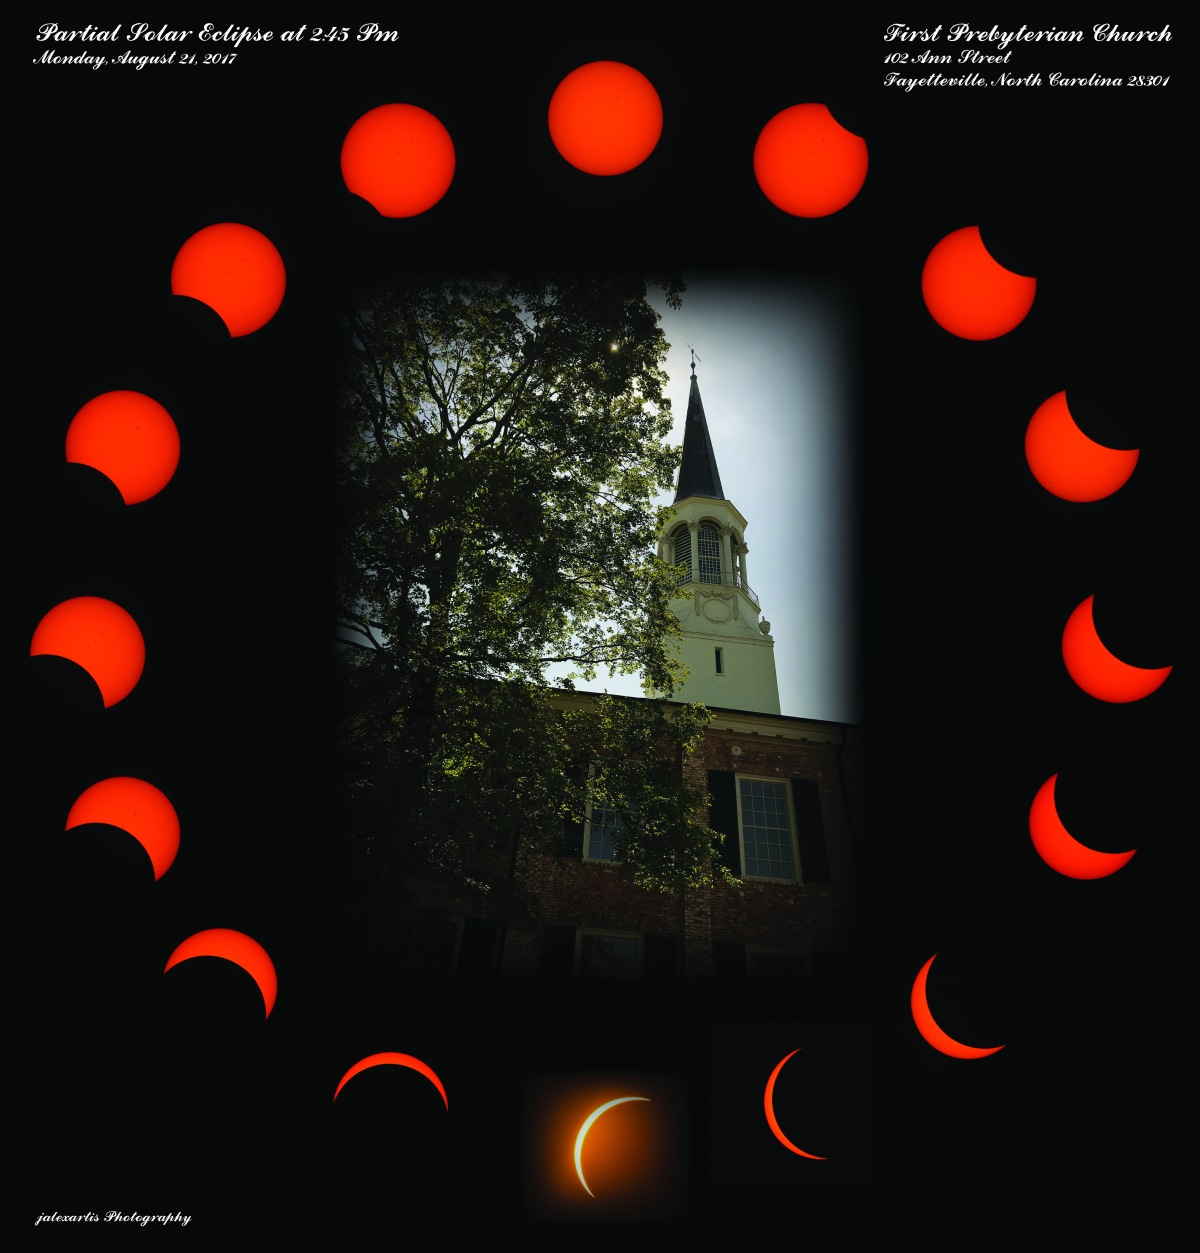 Video ~ Partial Solar Eclipse–First Presbyterian Church, Fayetteville, North Carolina, 08/21